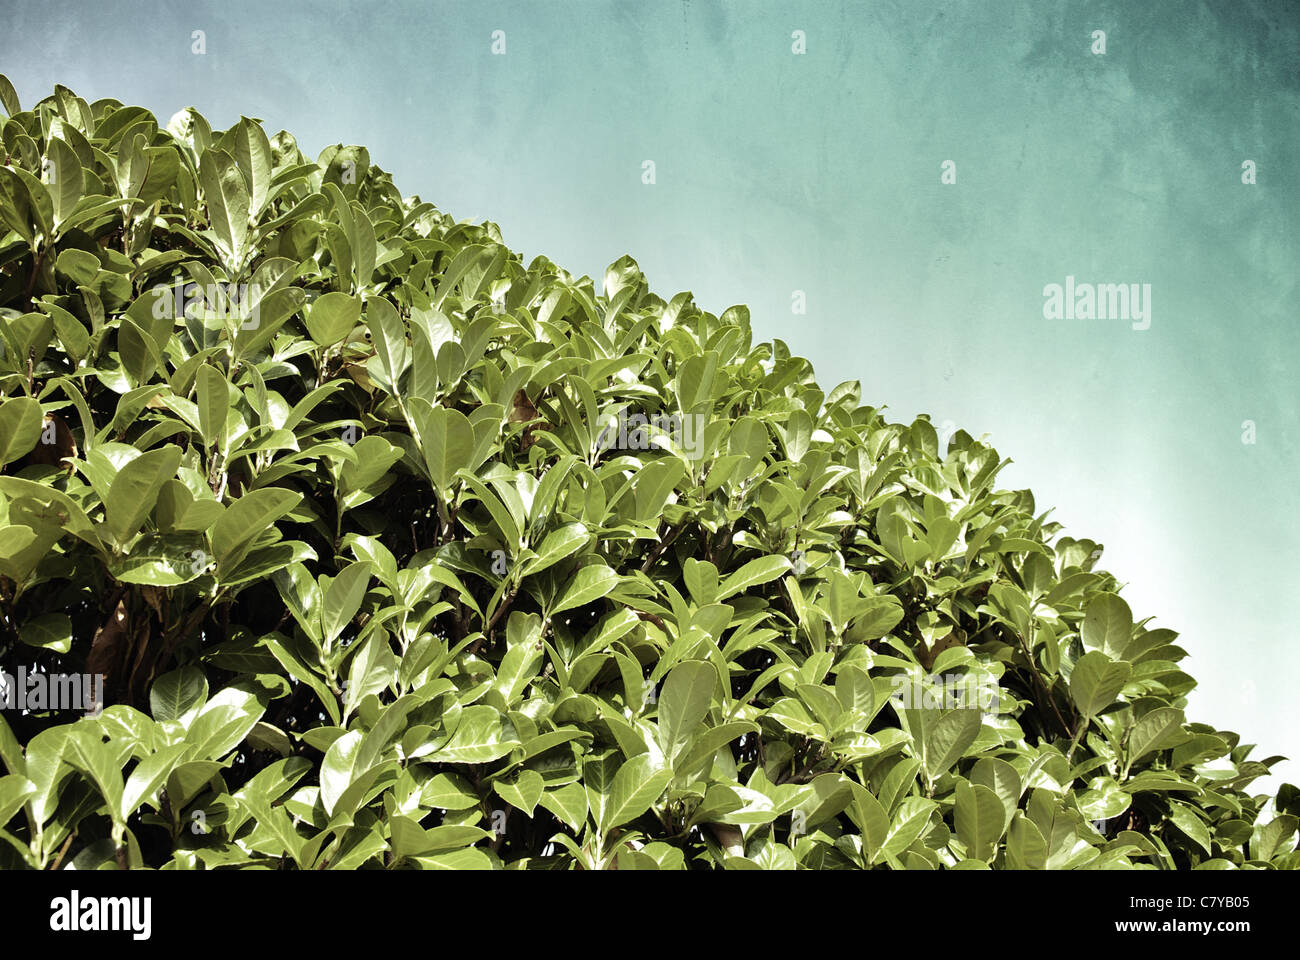 LEAVES OF A BUSH - Stock Image